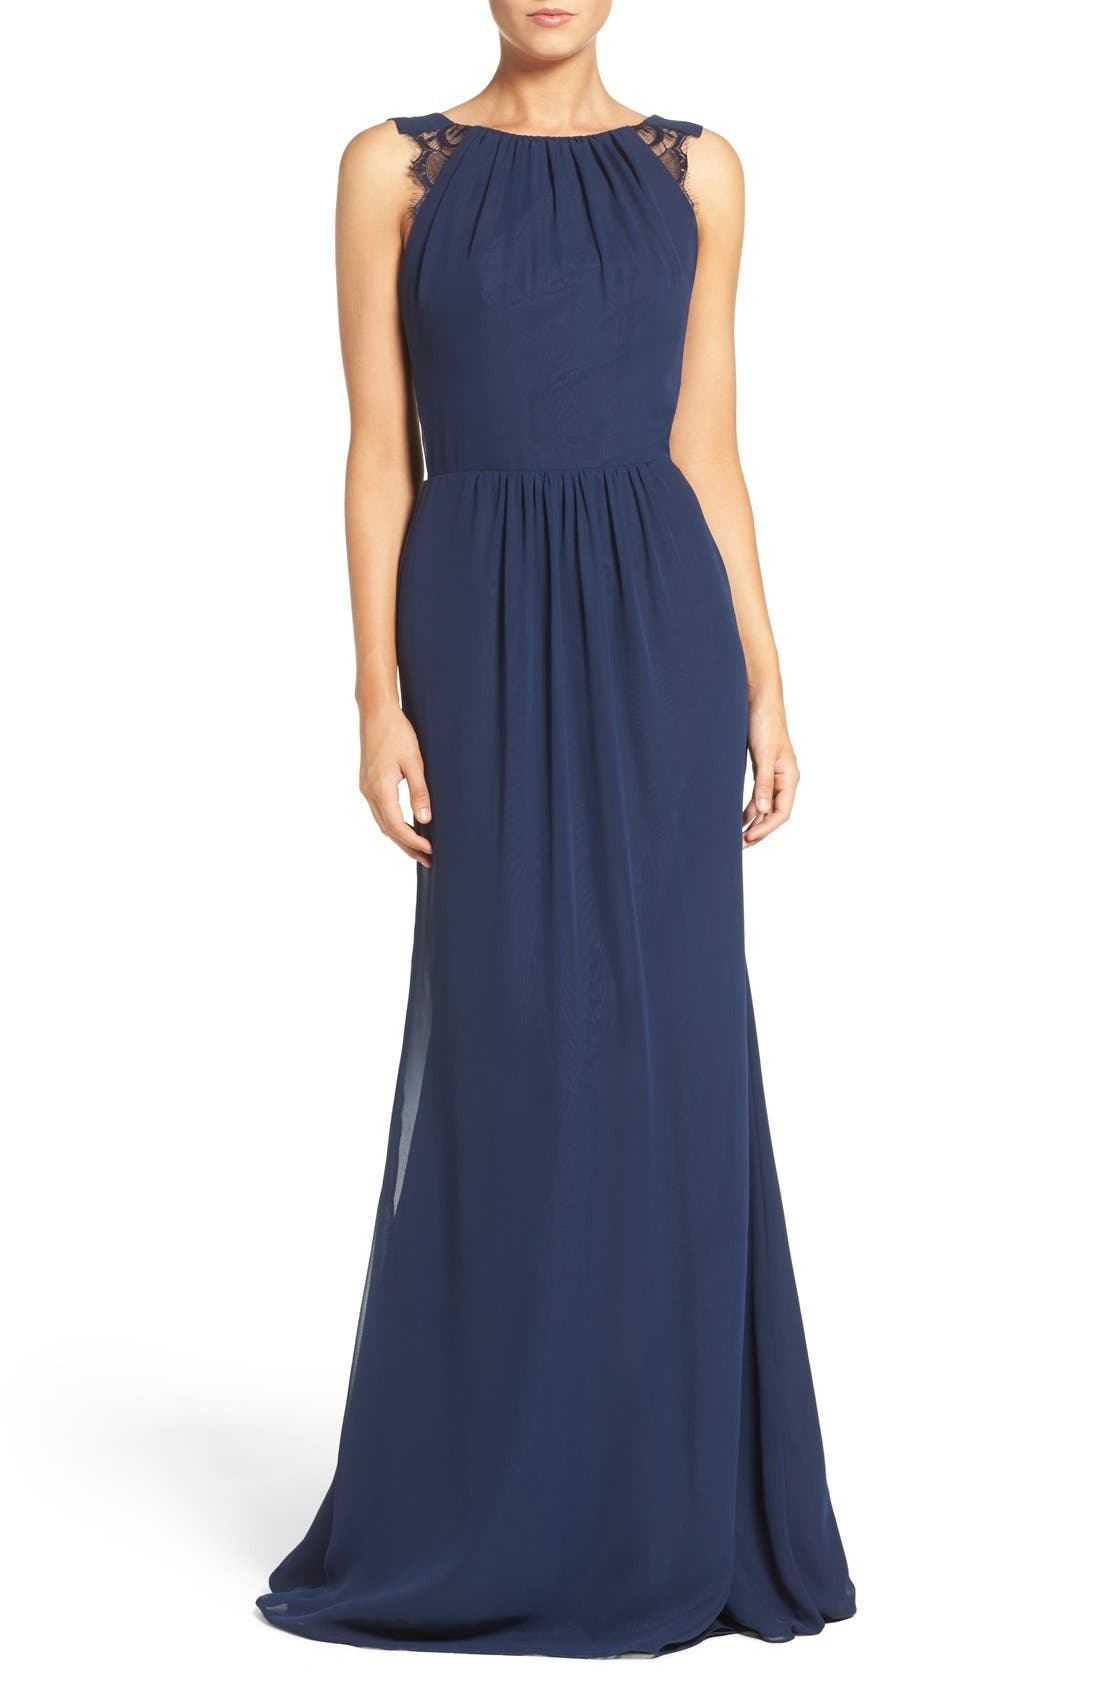 HAYLEY PAIGE OCCASIONS Lace Strap Gathered Chiffon Gown